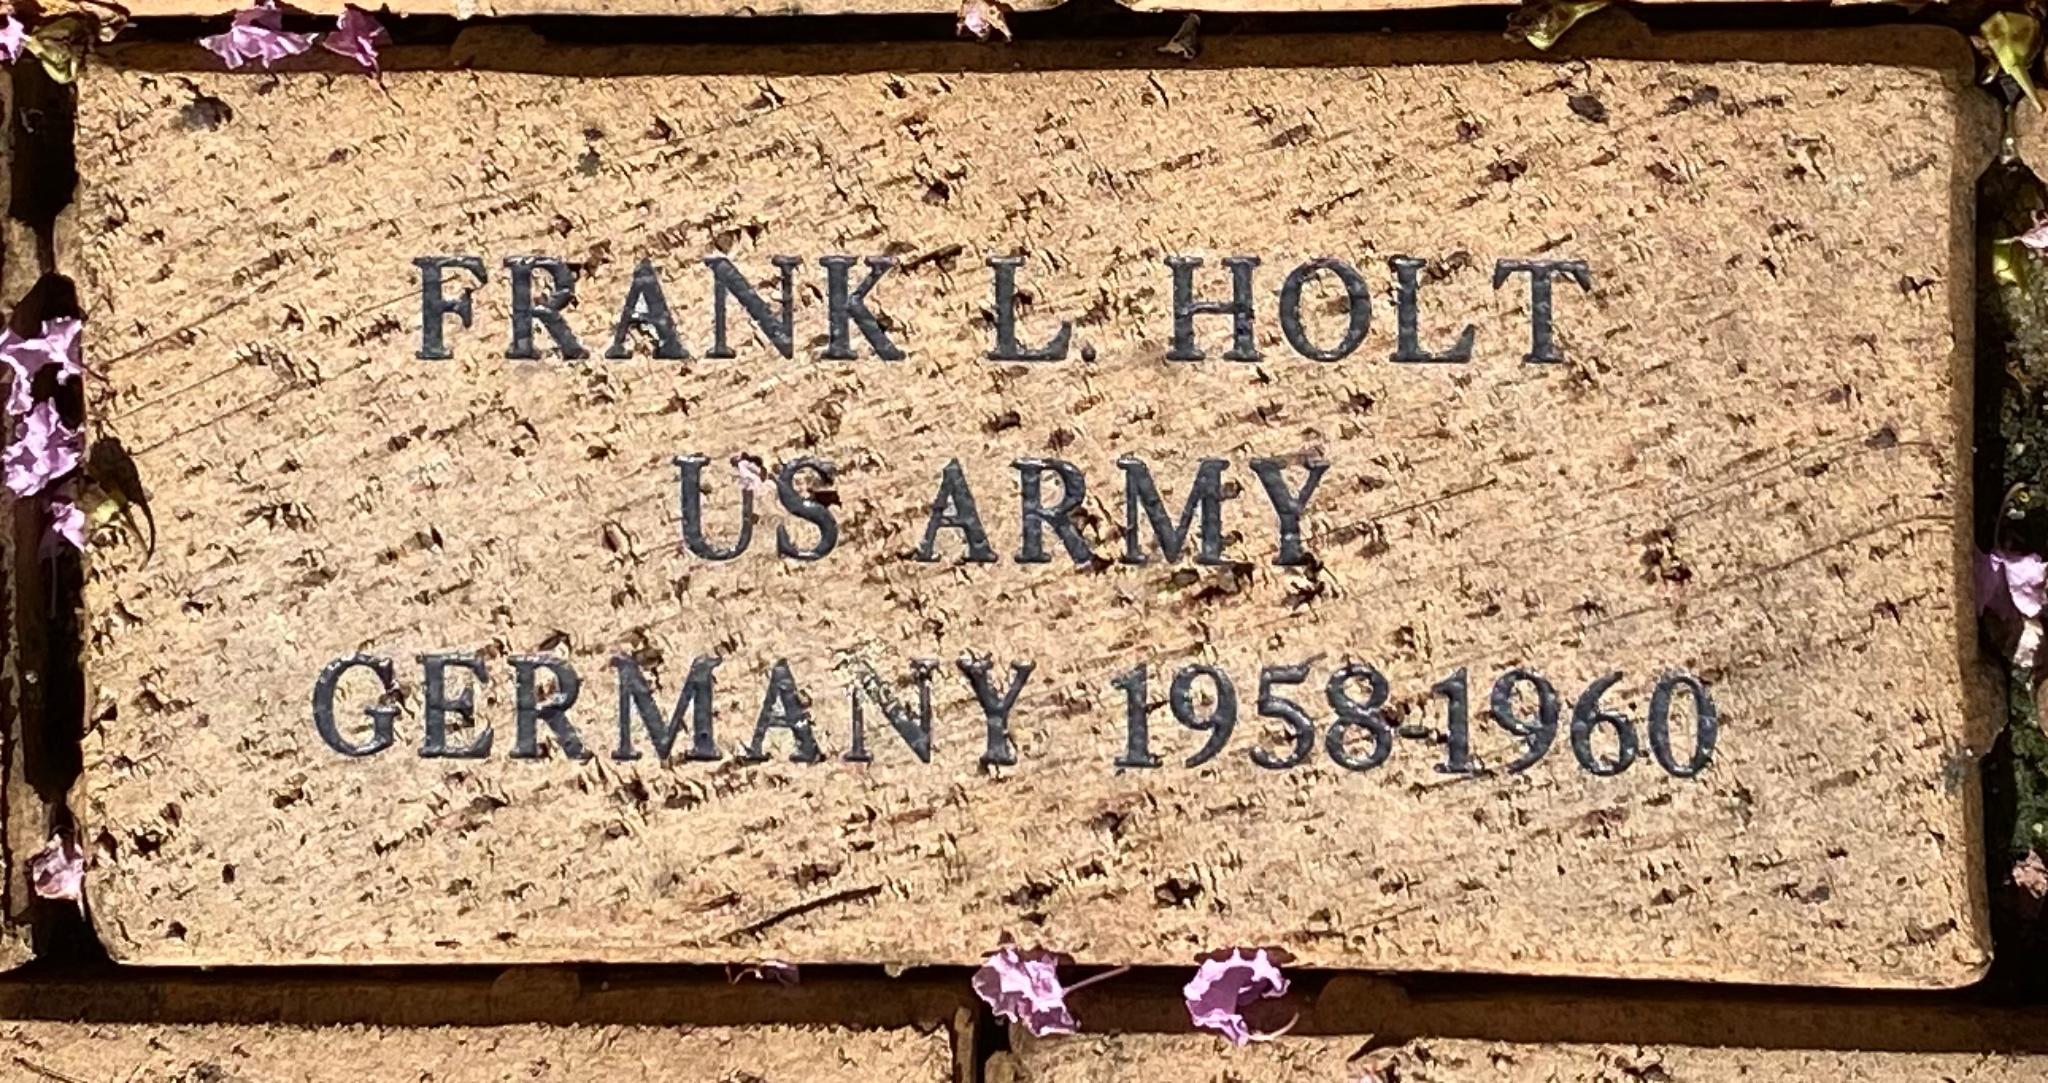 FRANK L HOLT US ARMY GERMANY 1958-1960